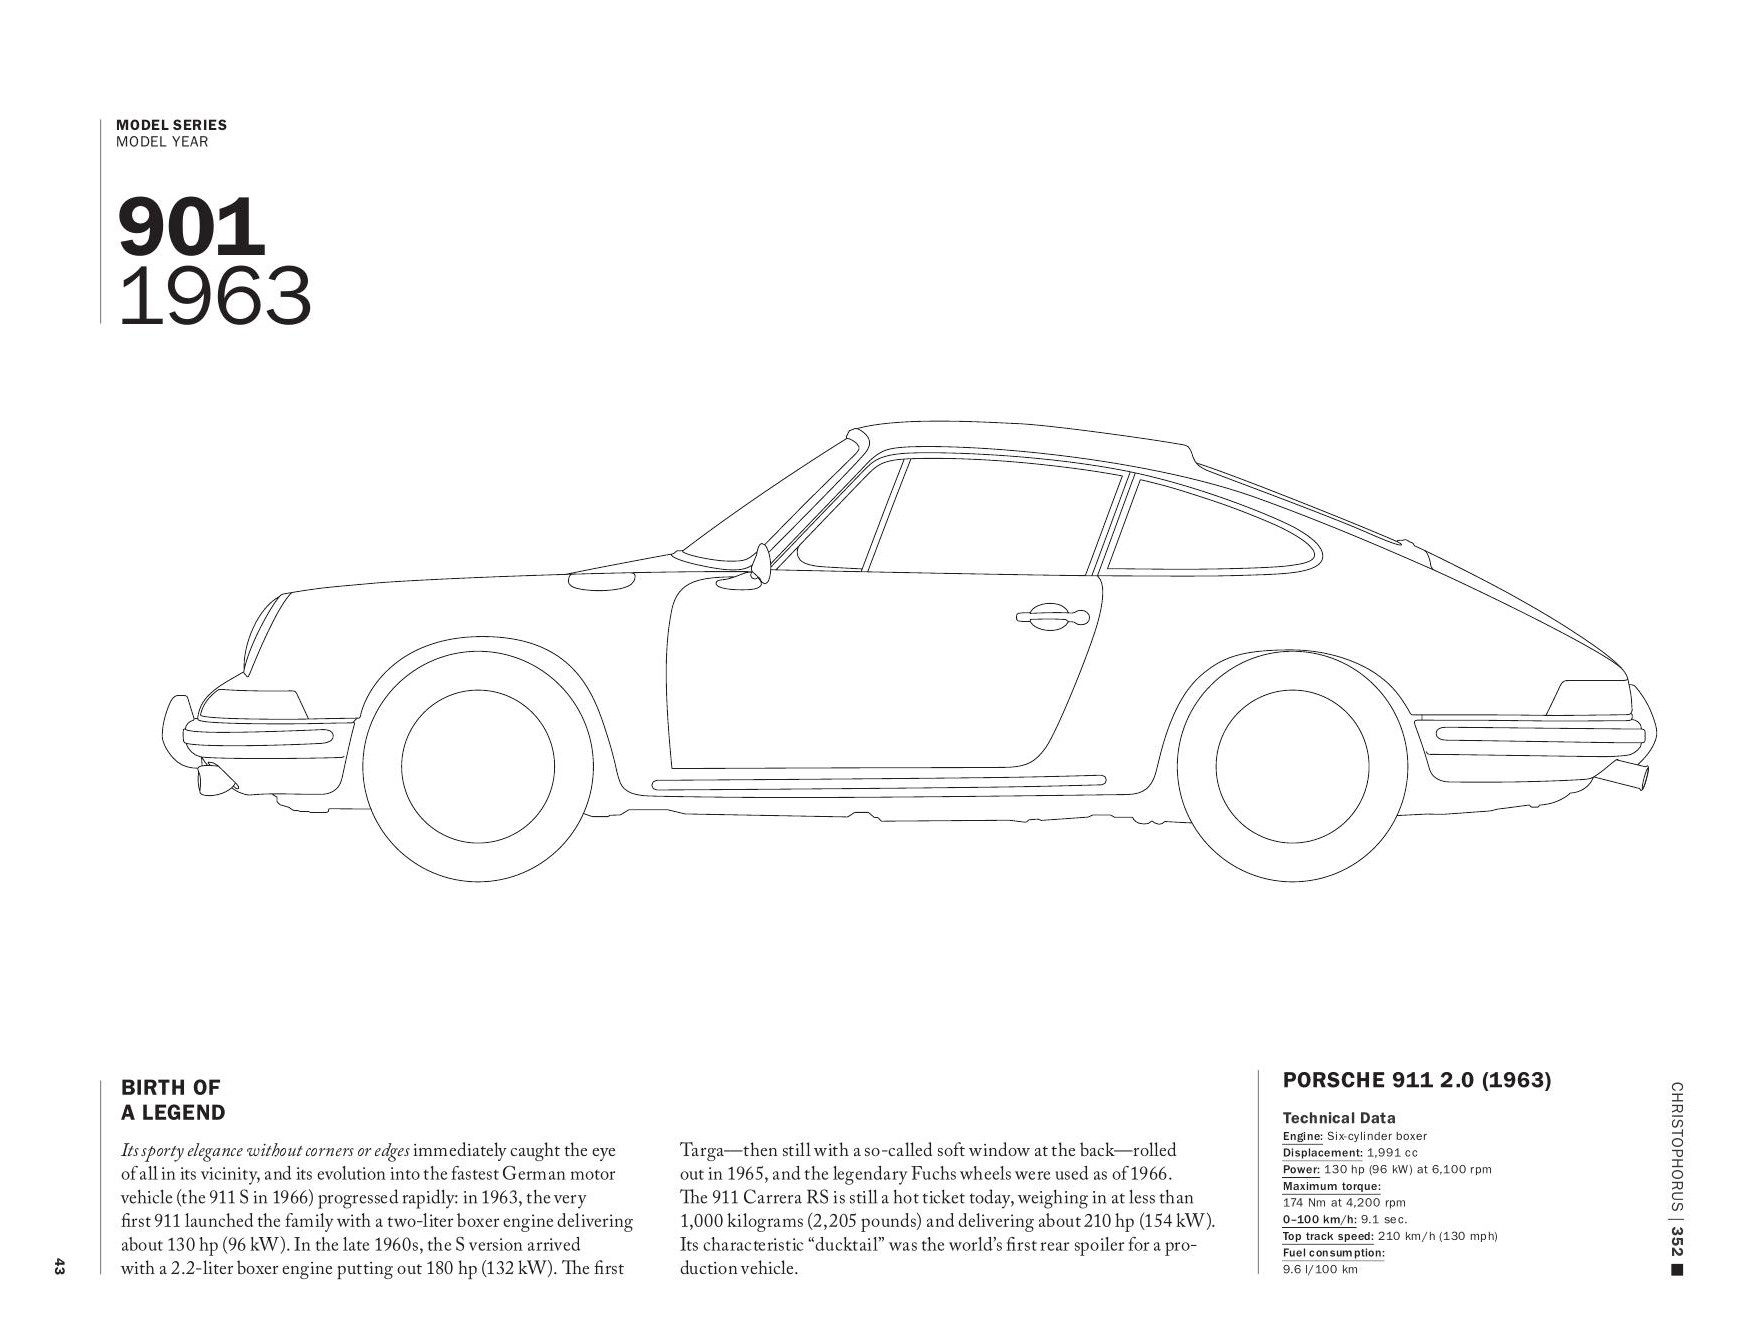 Porsche 964 Cars History Page 11 996 Engine Cylinder Diagram 901 991 1963 2011 Christophorus Mag